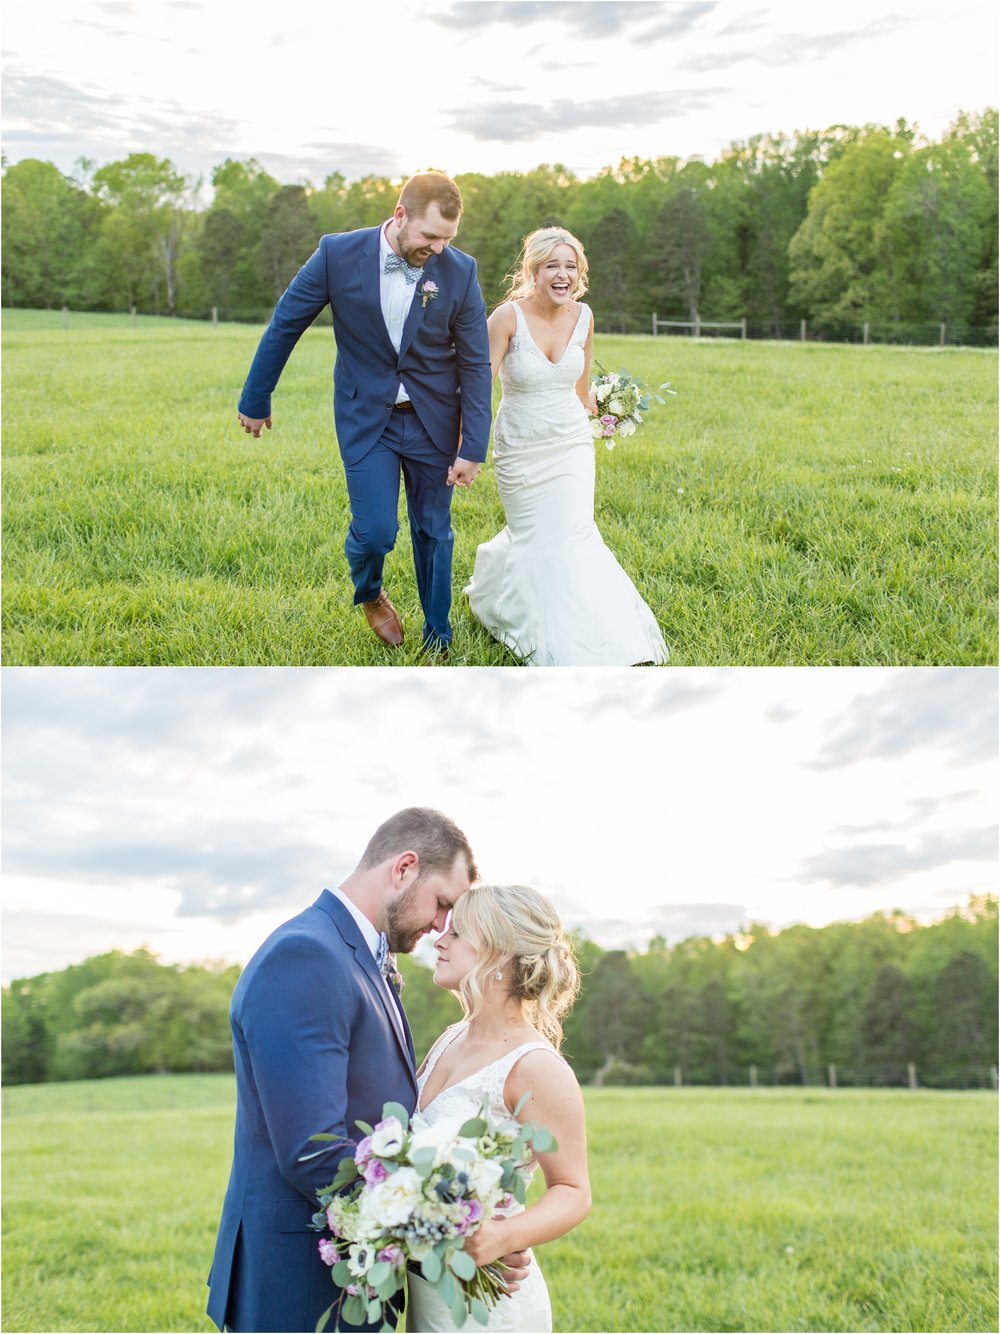 Bleckley Wedding- Sneak Peek-136.jpg